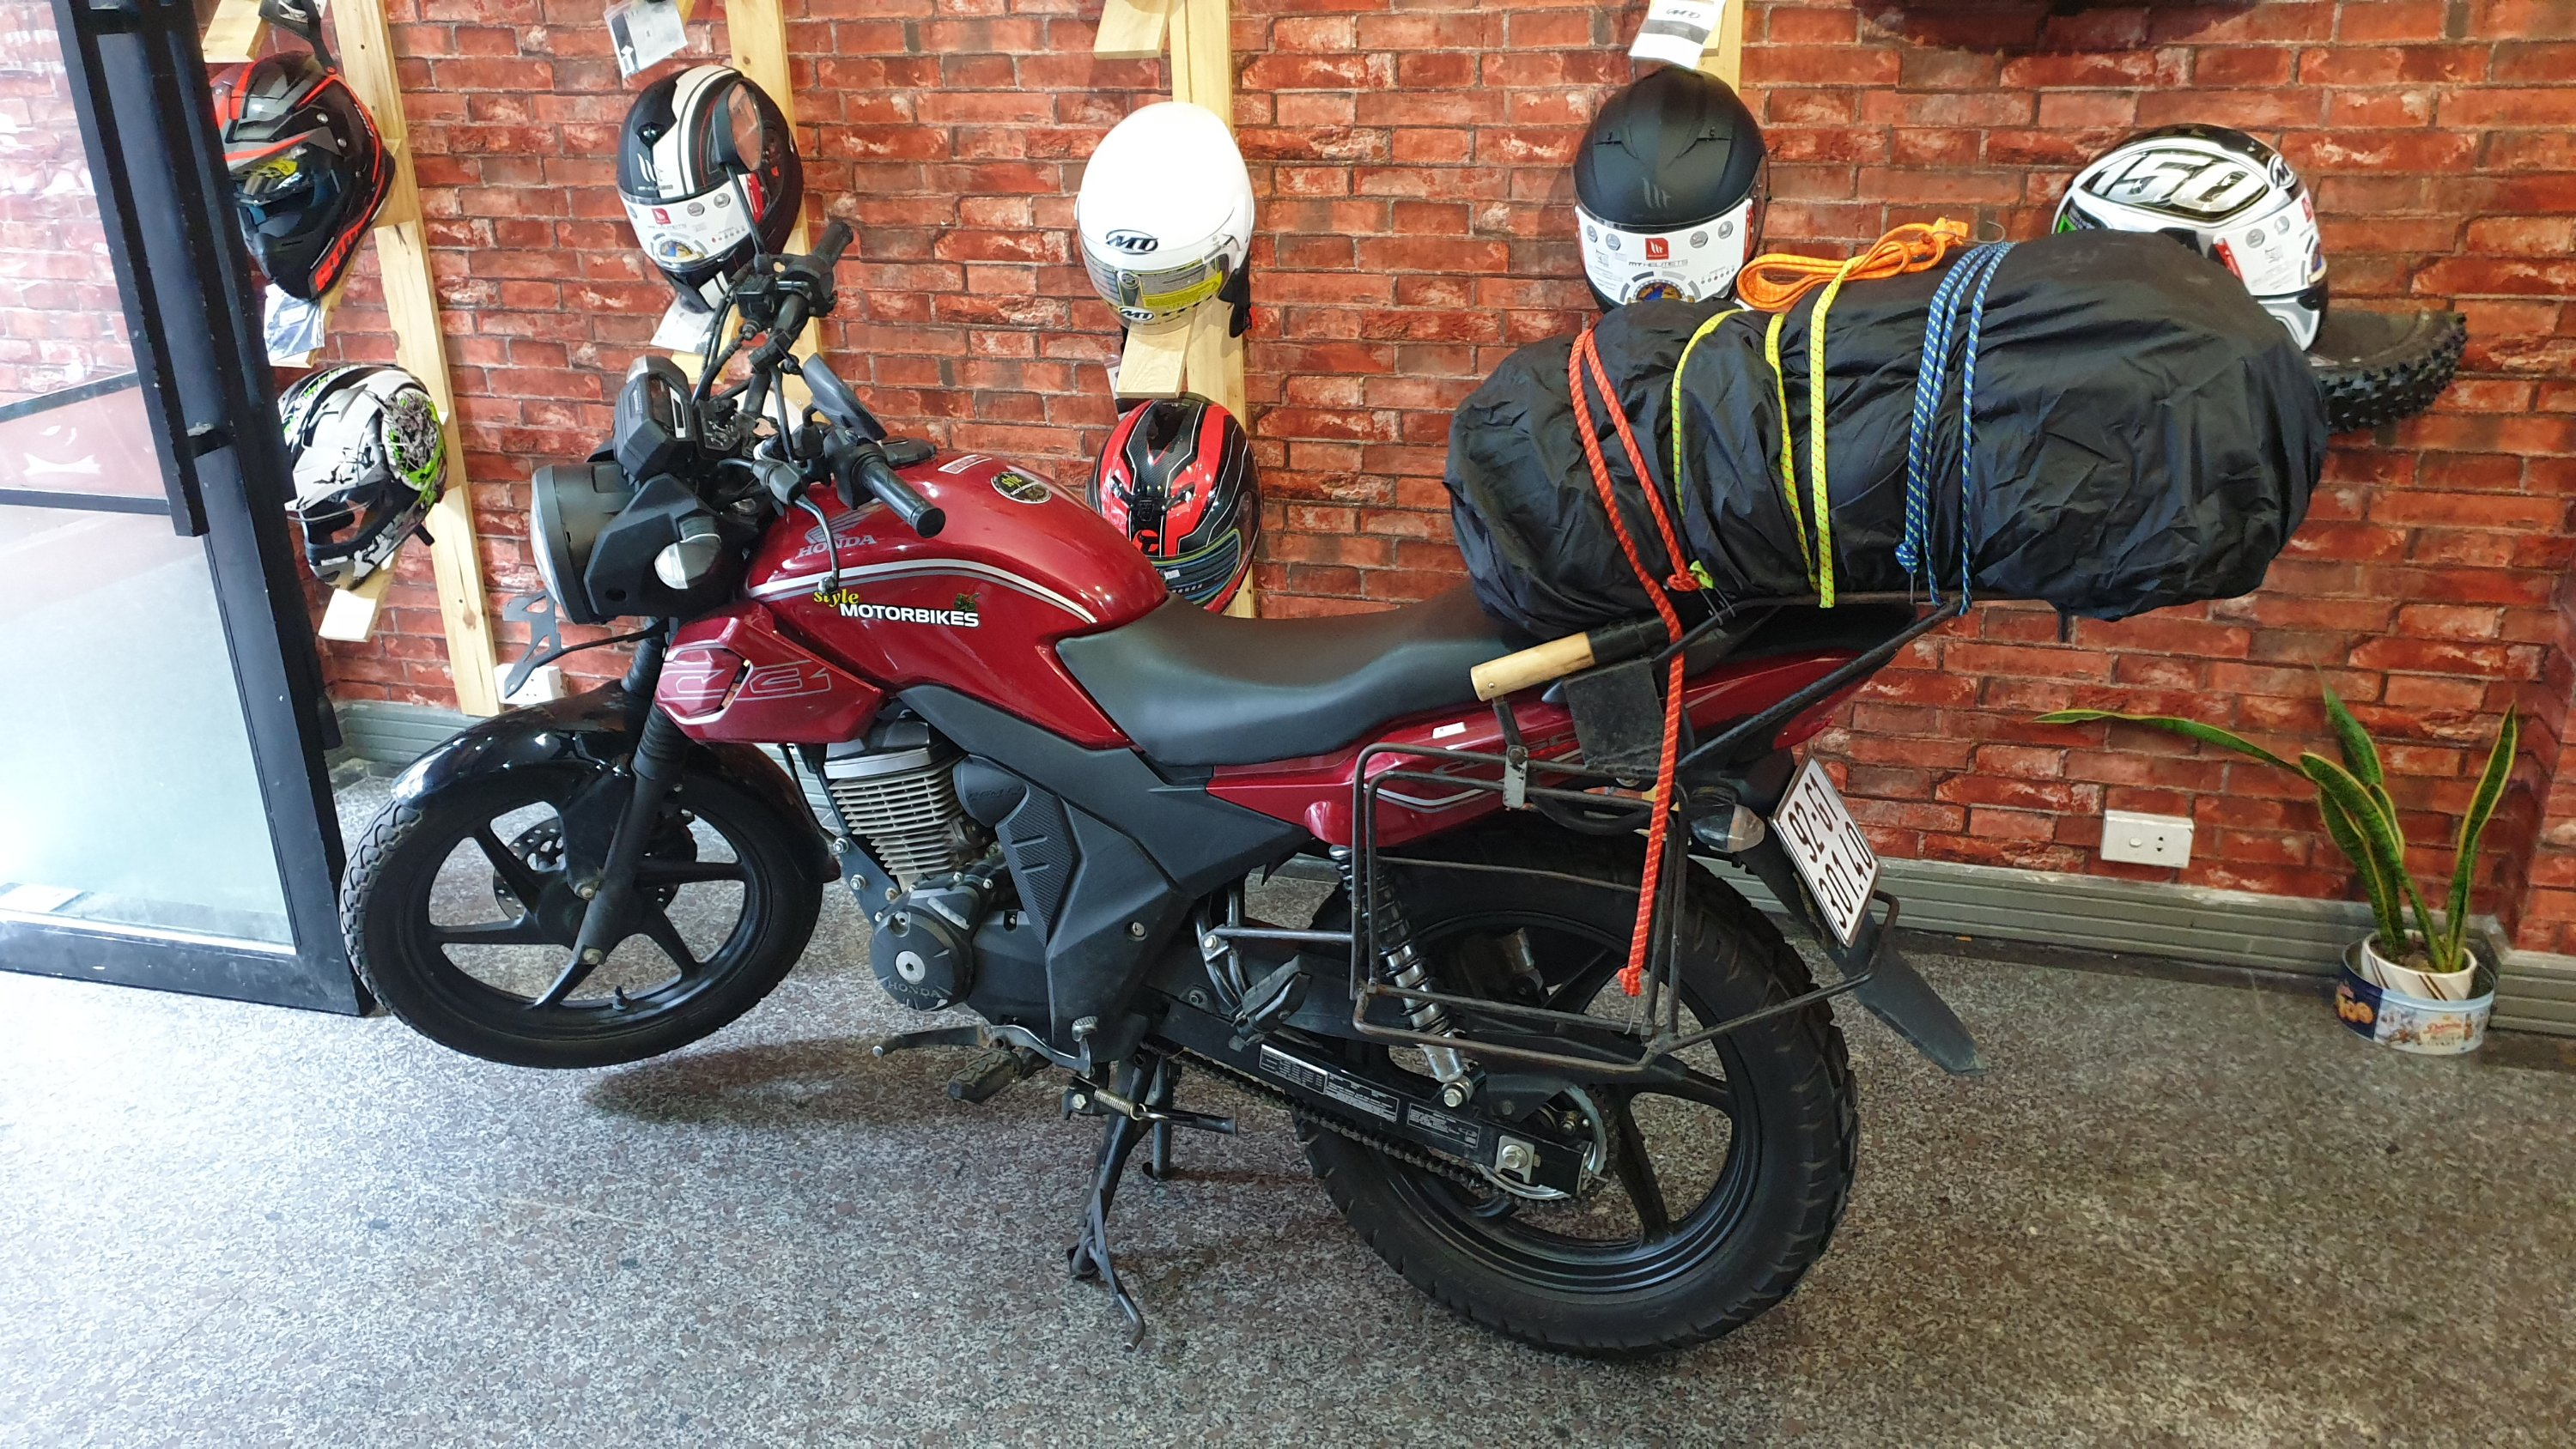 Bike loaded with luggage in the shop before leaving